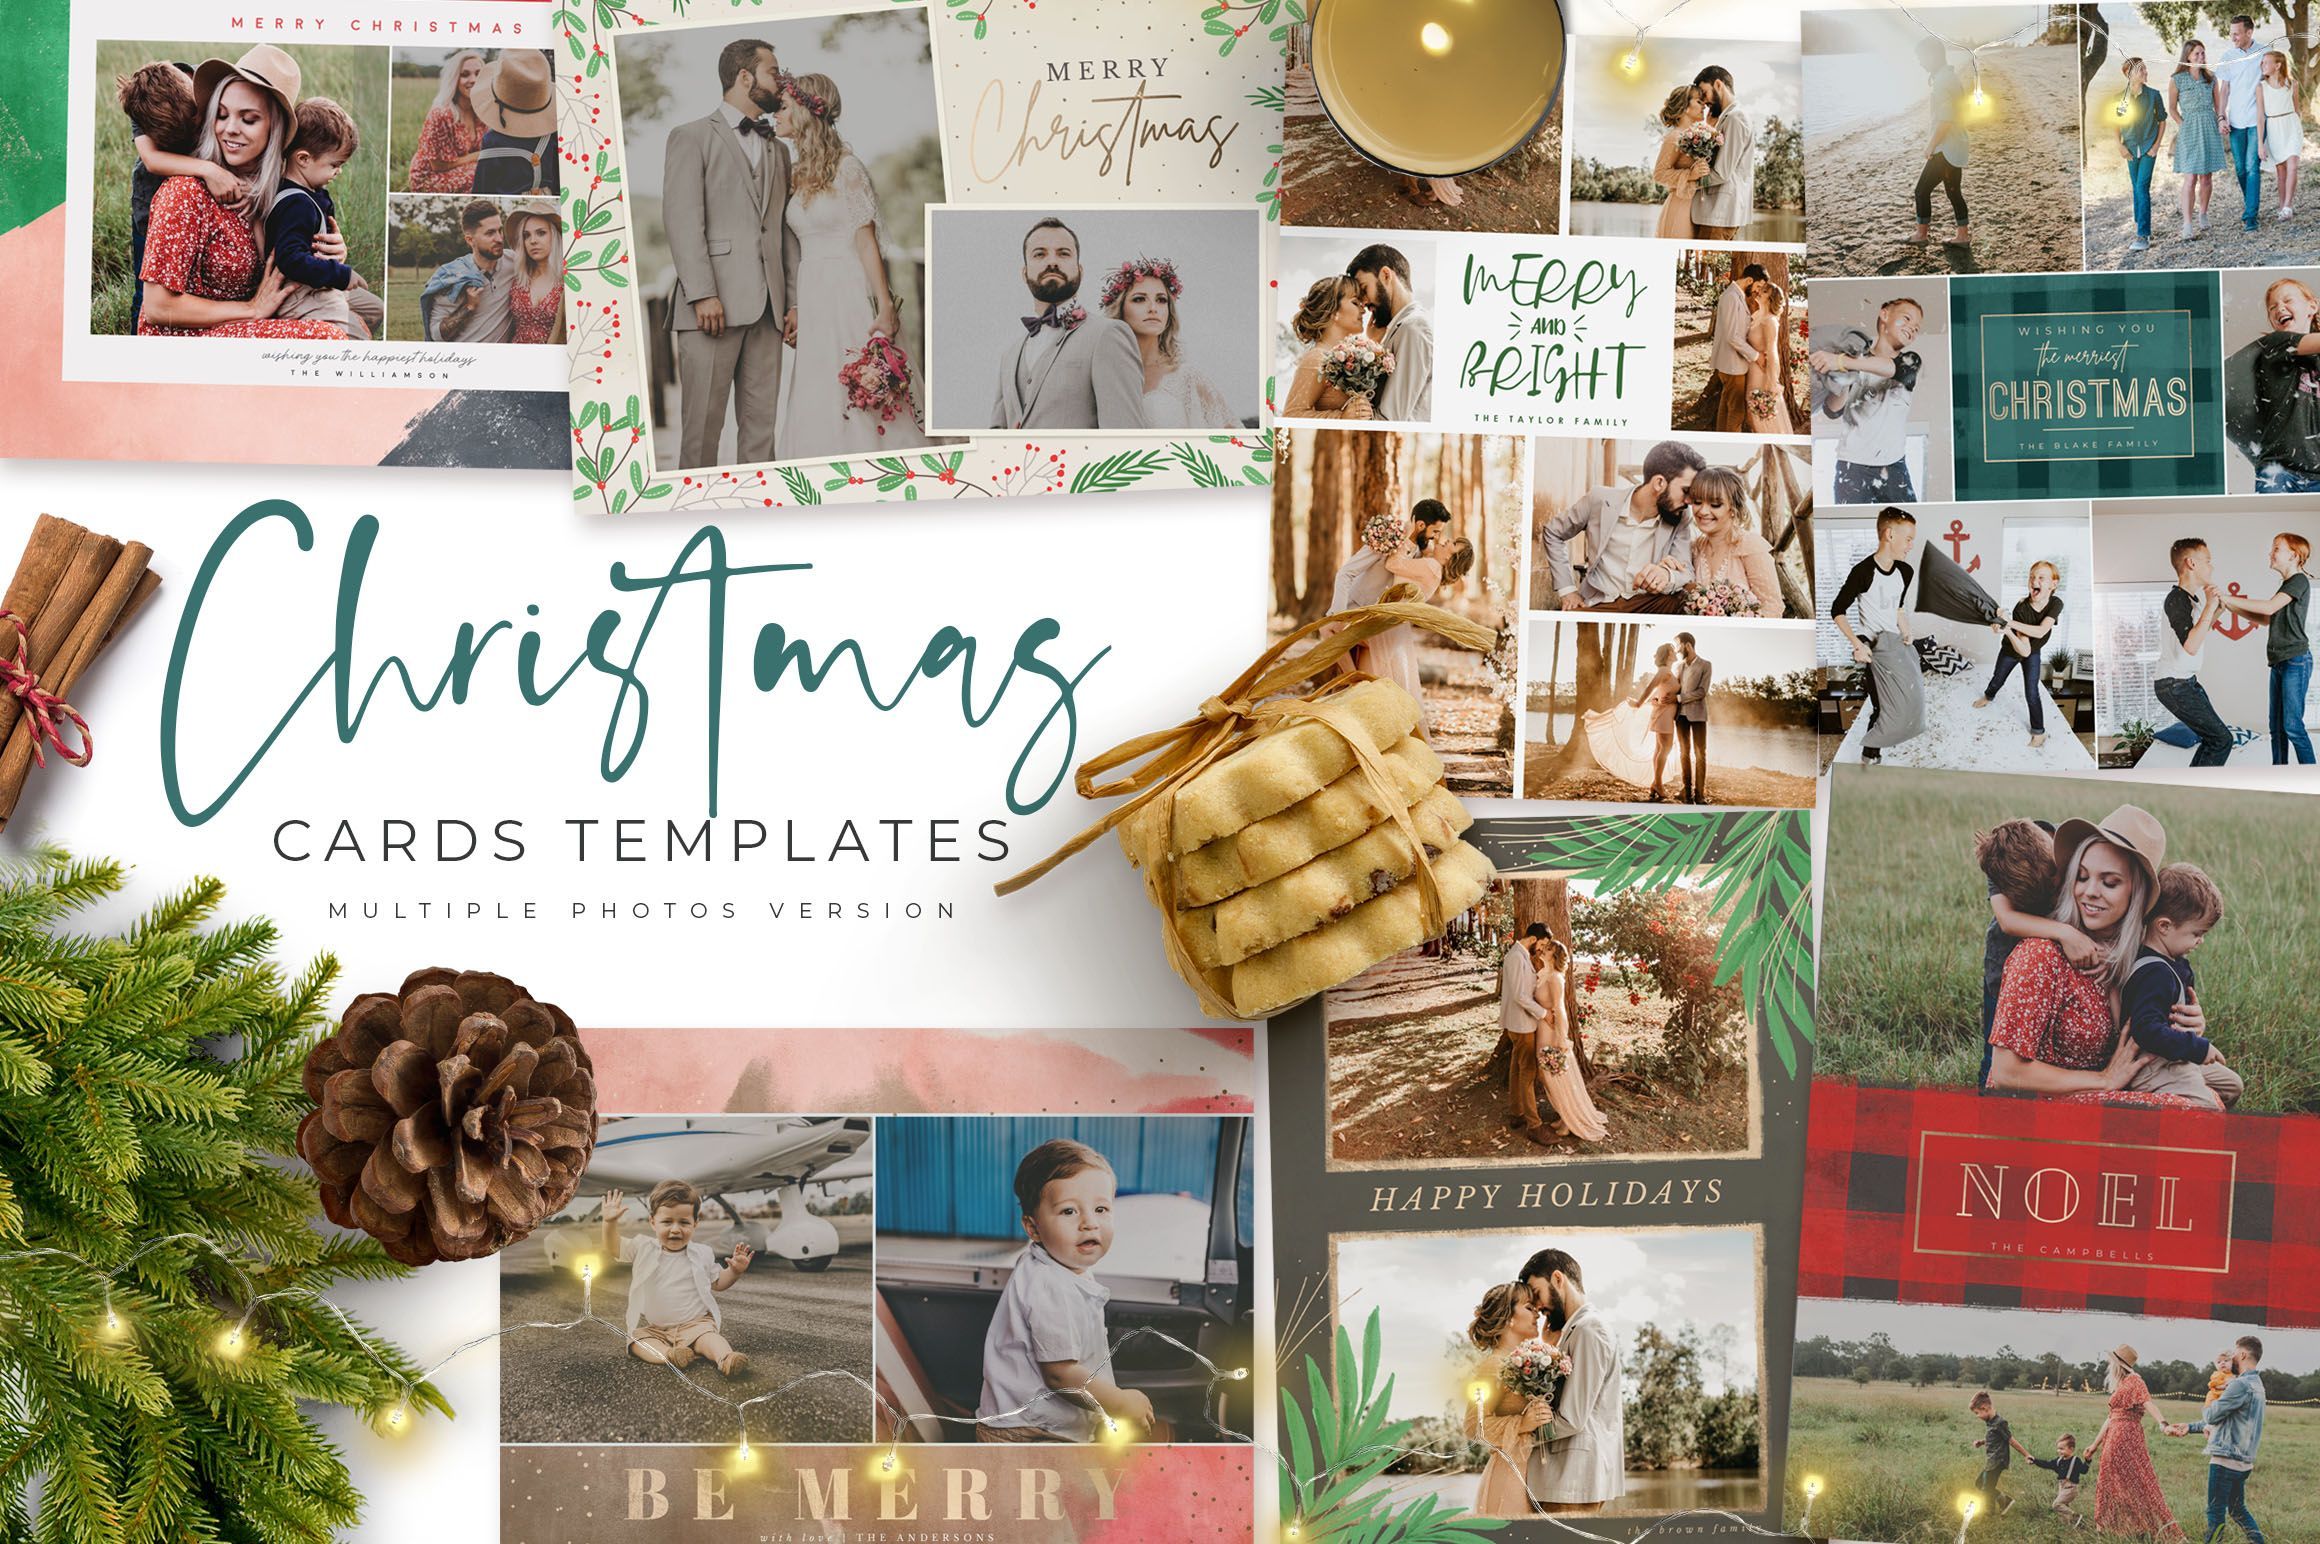 Christmas Card Multiple Photos 351192 Card Making Design Bundles Christmas Card Template Christmas Cards Card Making Designs